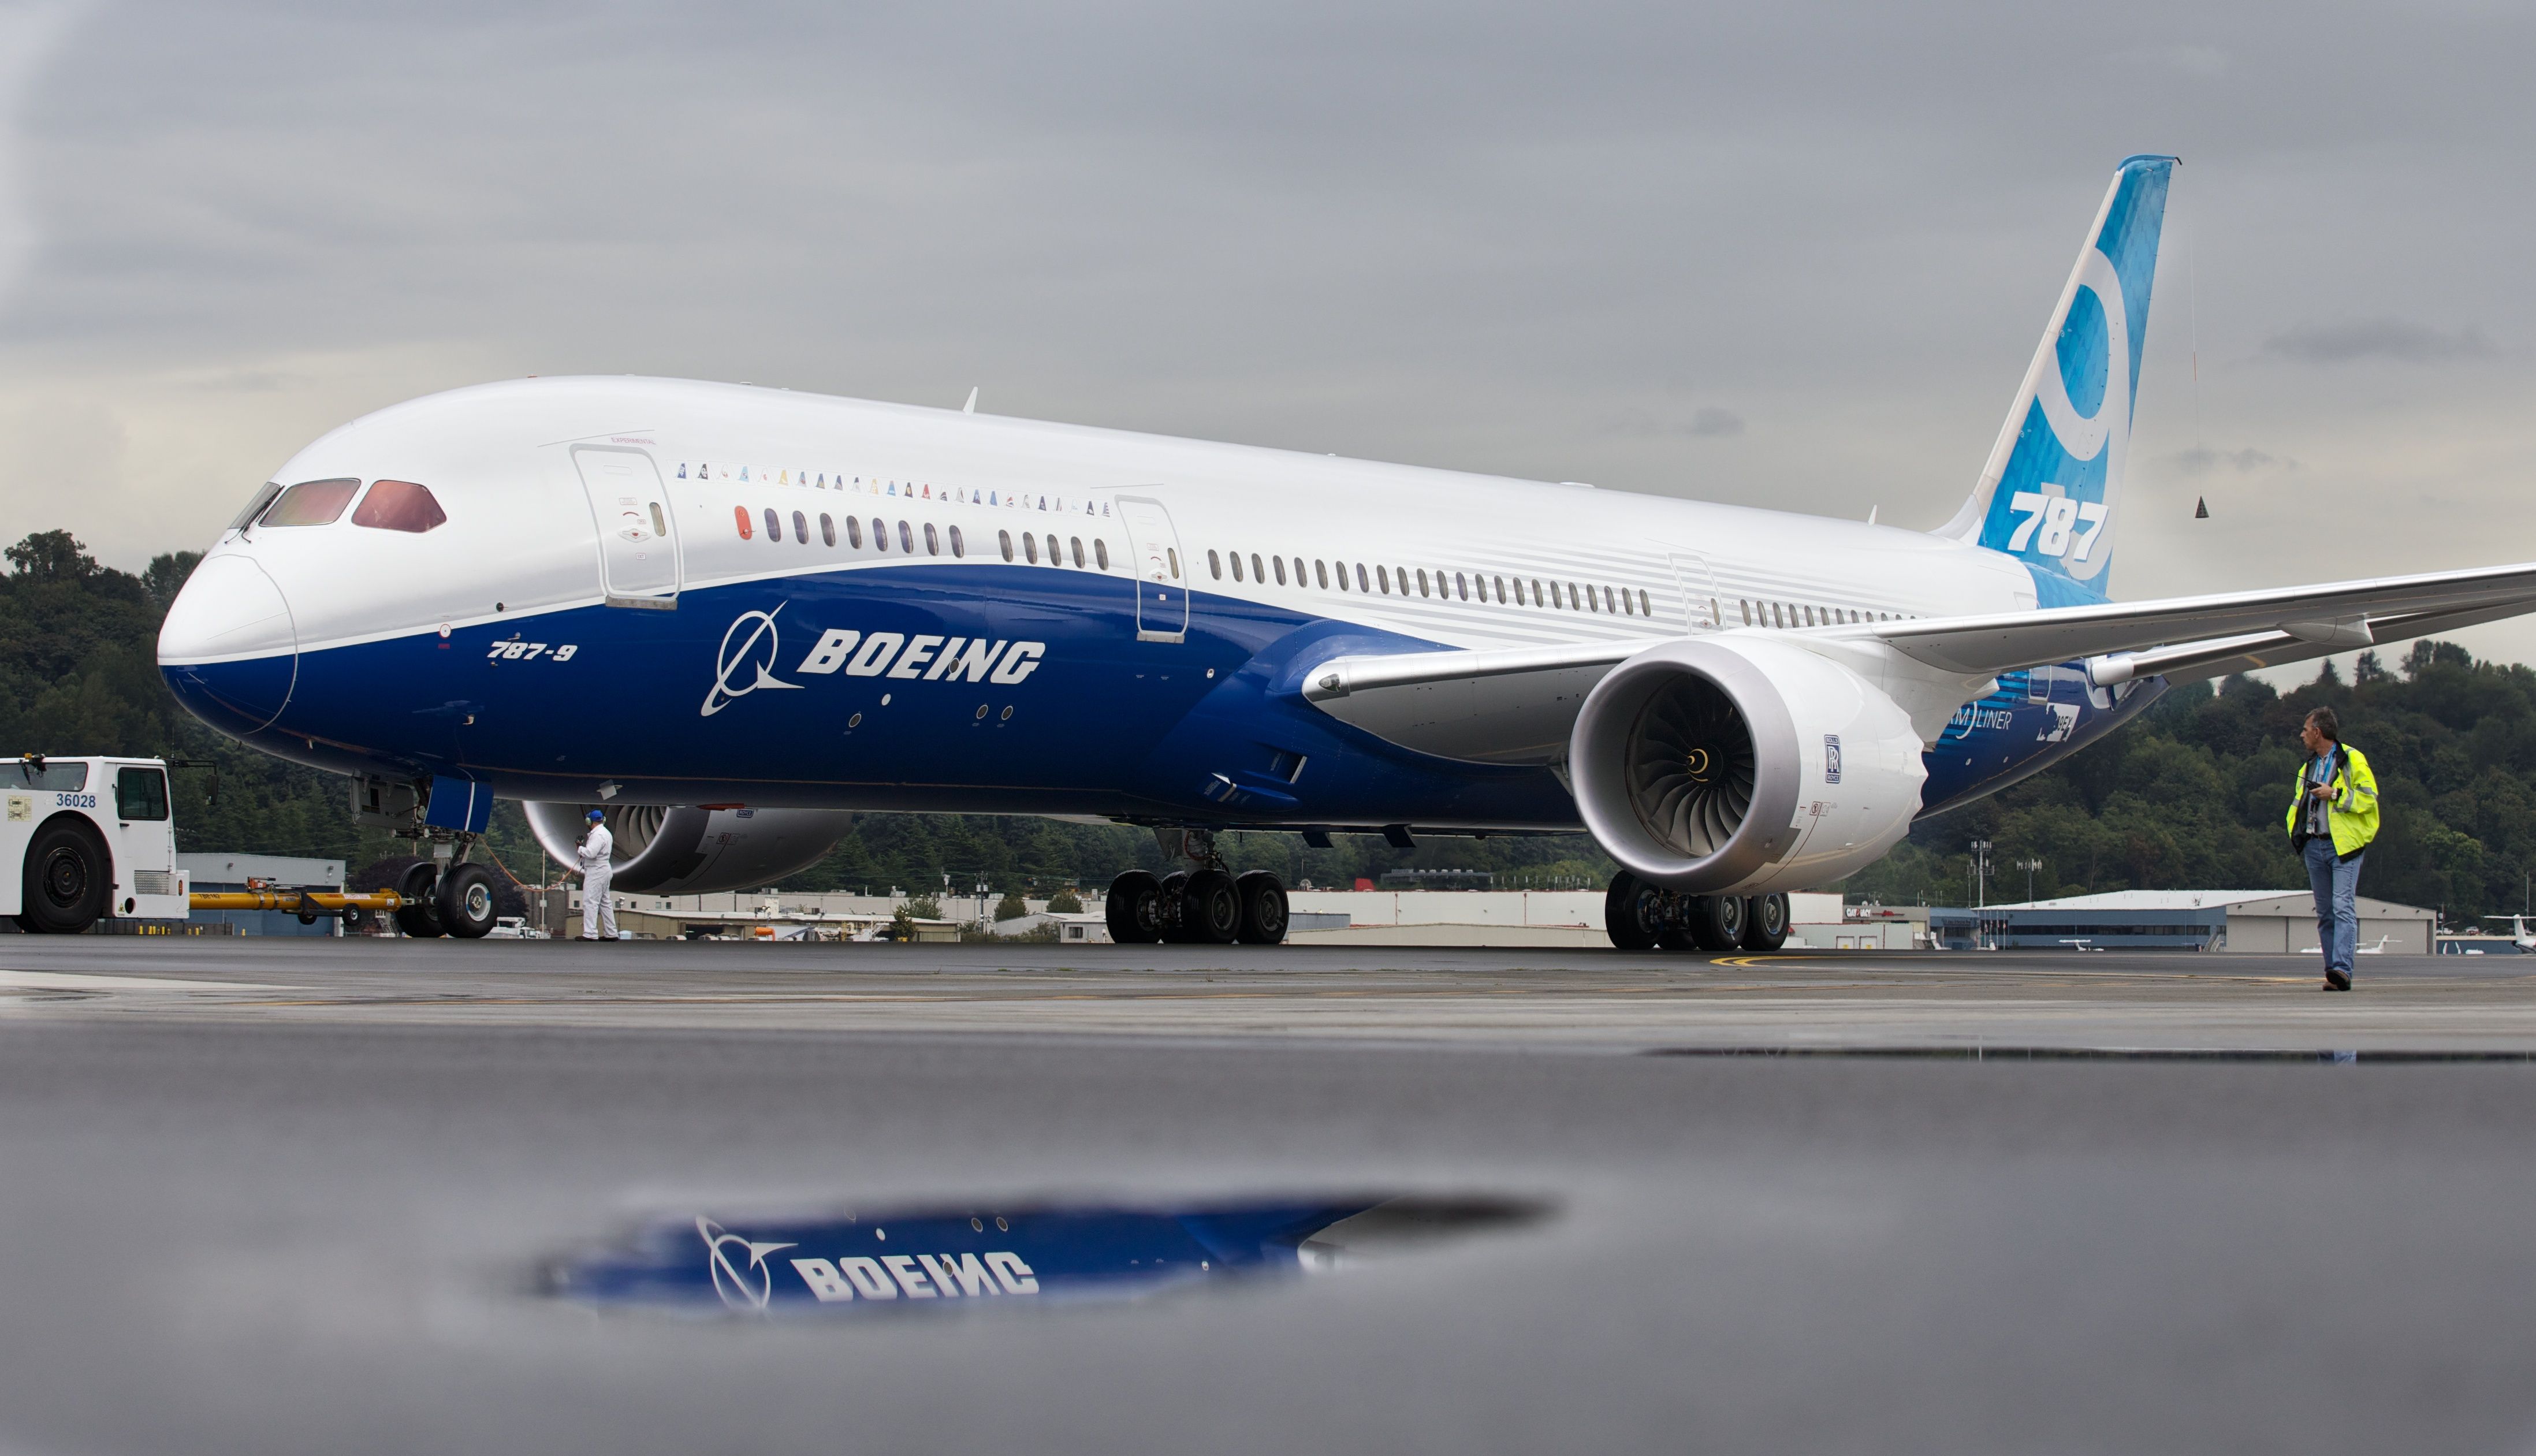 Latest Boeing Dreamliner cleared for takeoff - CBS News